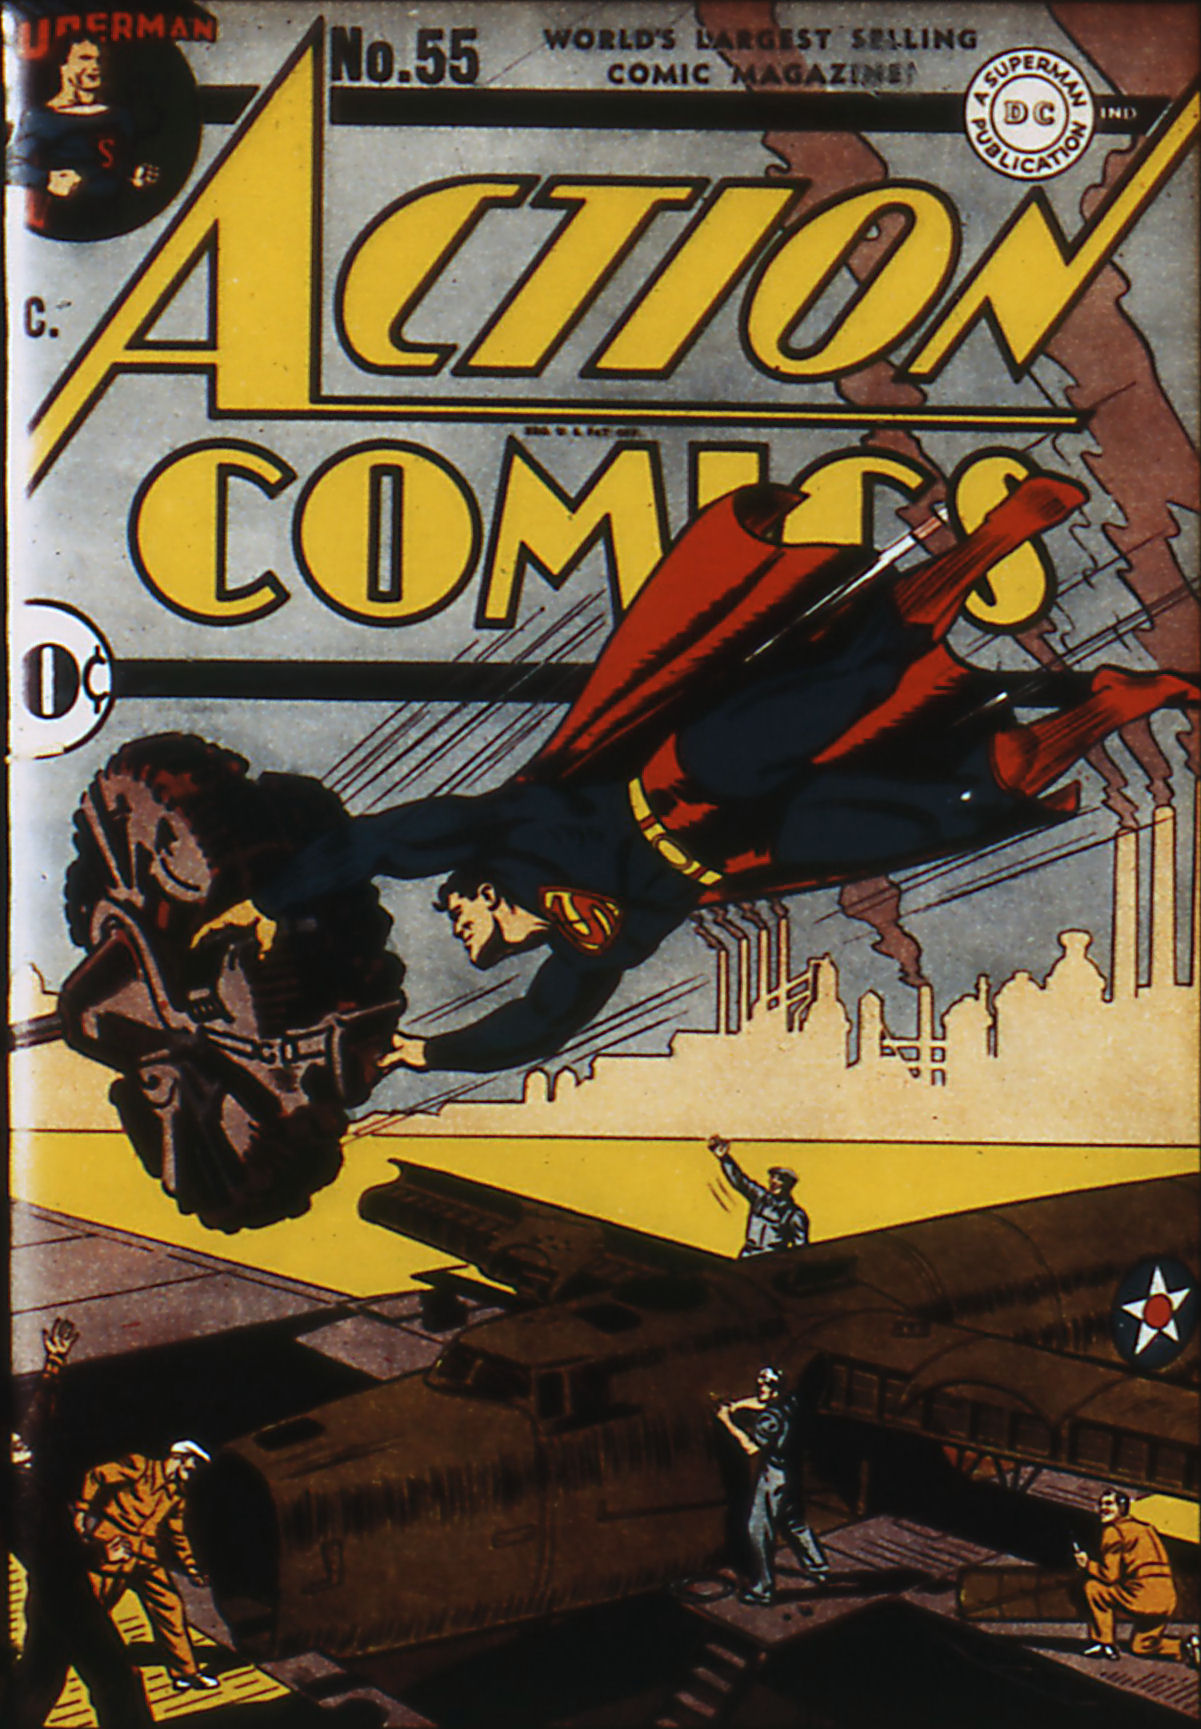 Read online Action Comics (1938) comic -  Issue #55 - 1